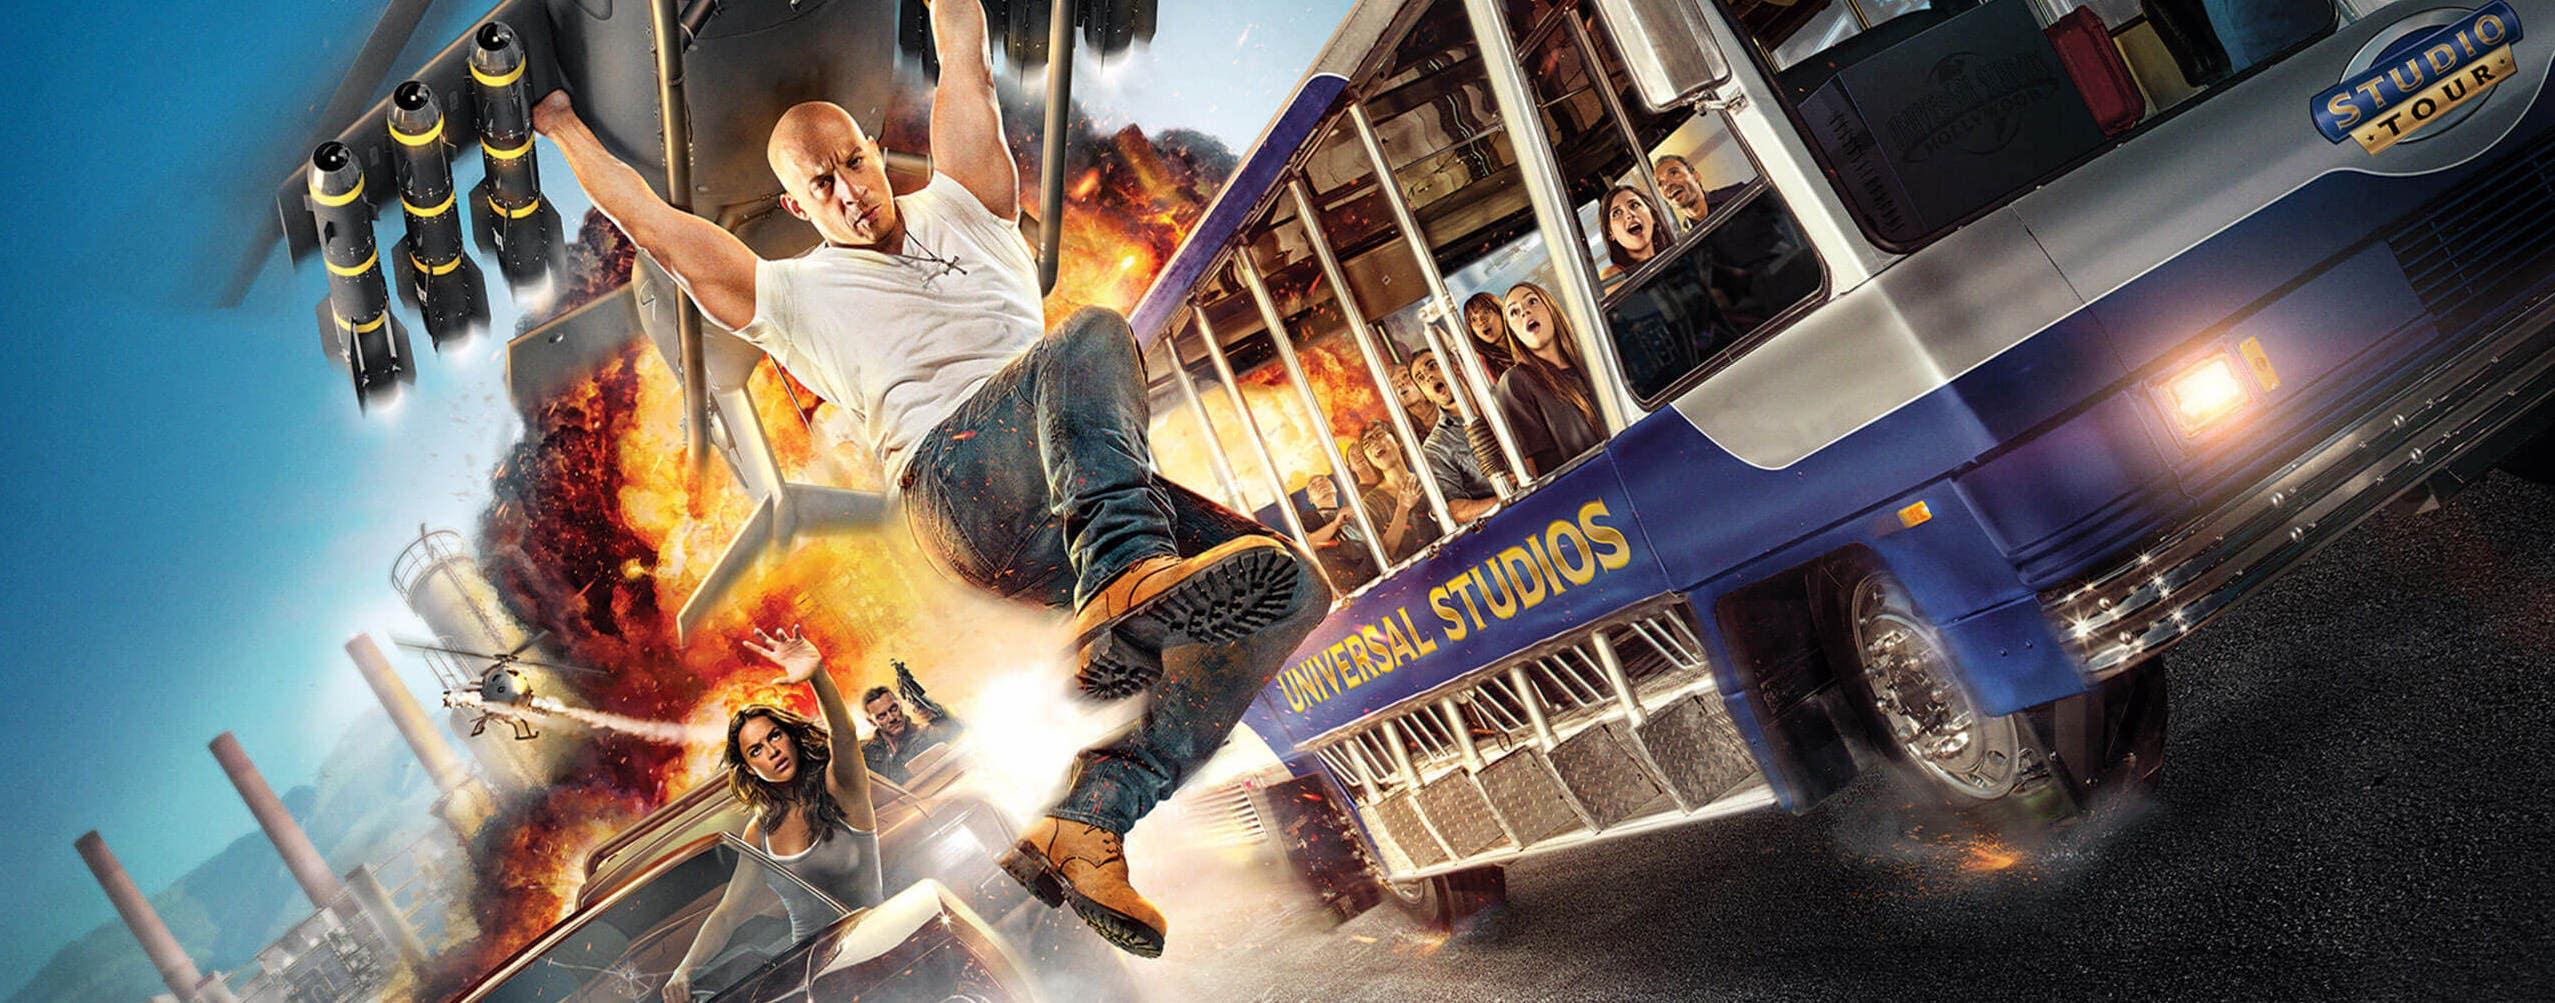 Fast & Furious - Supercharged | Photo: Universal Studios Hollywood